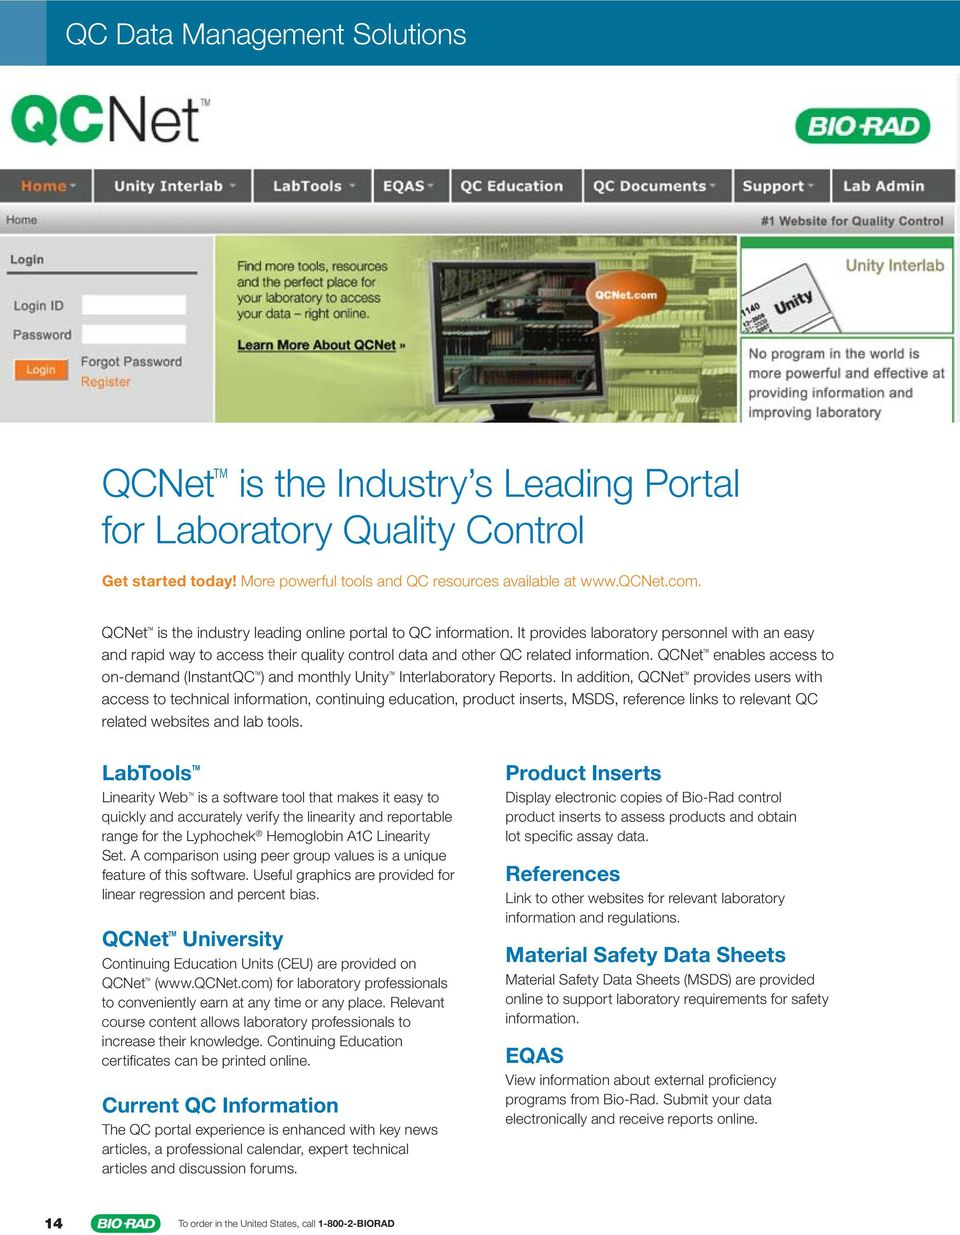 QCNet enables access to on-demand (InstantQC ) and monthly Unity Interlaboratory Reports.